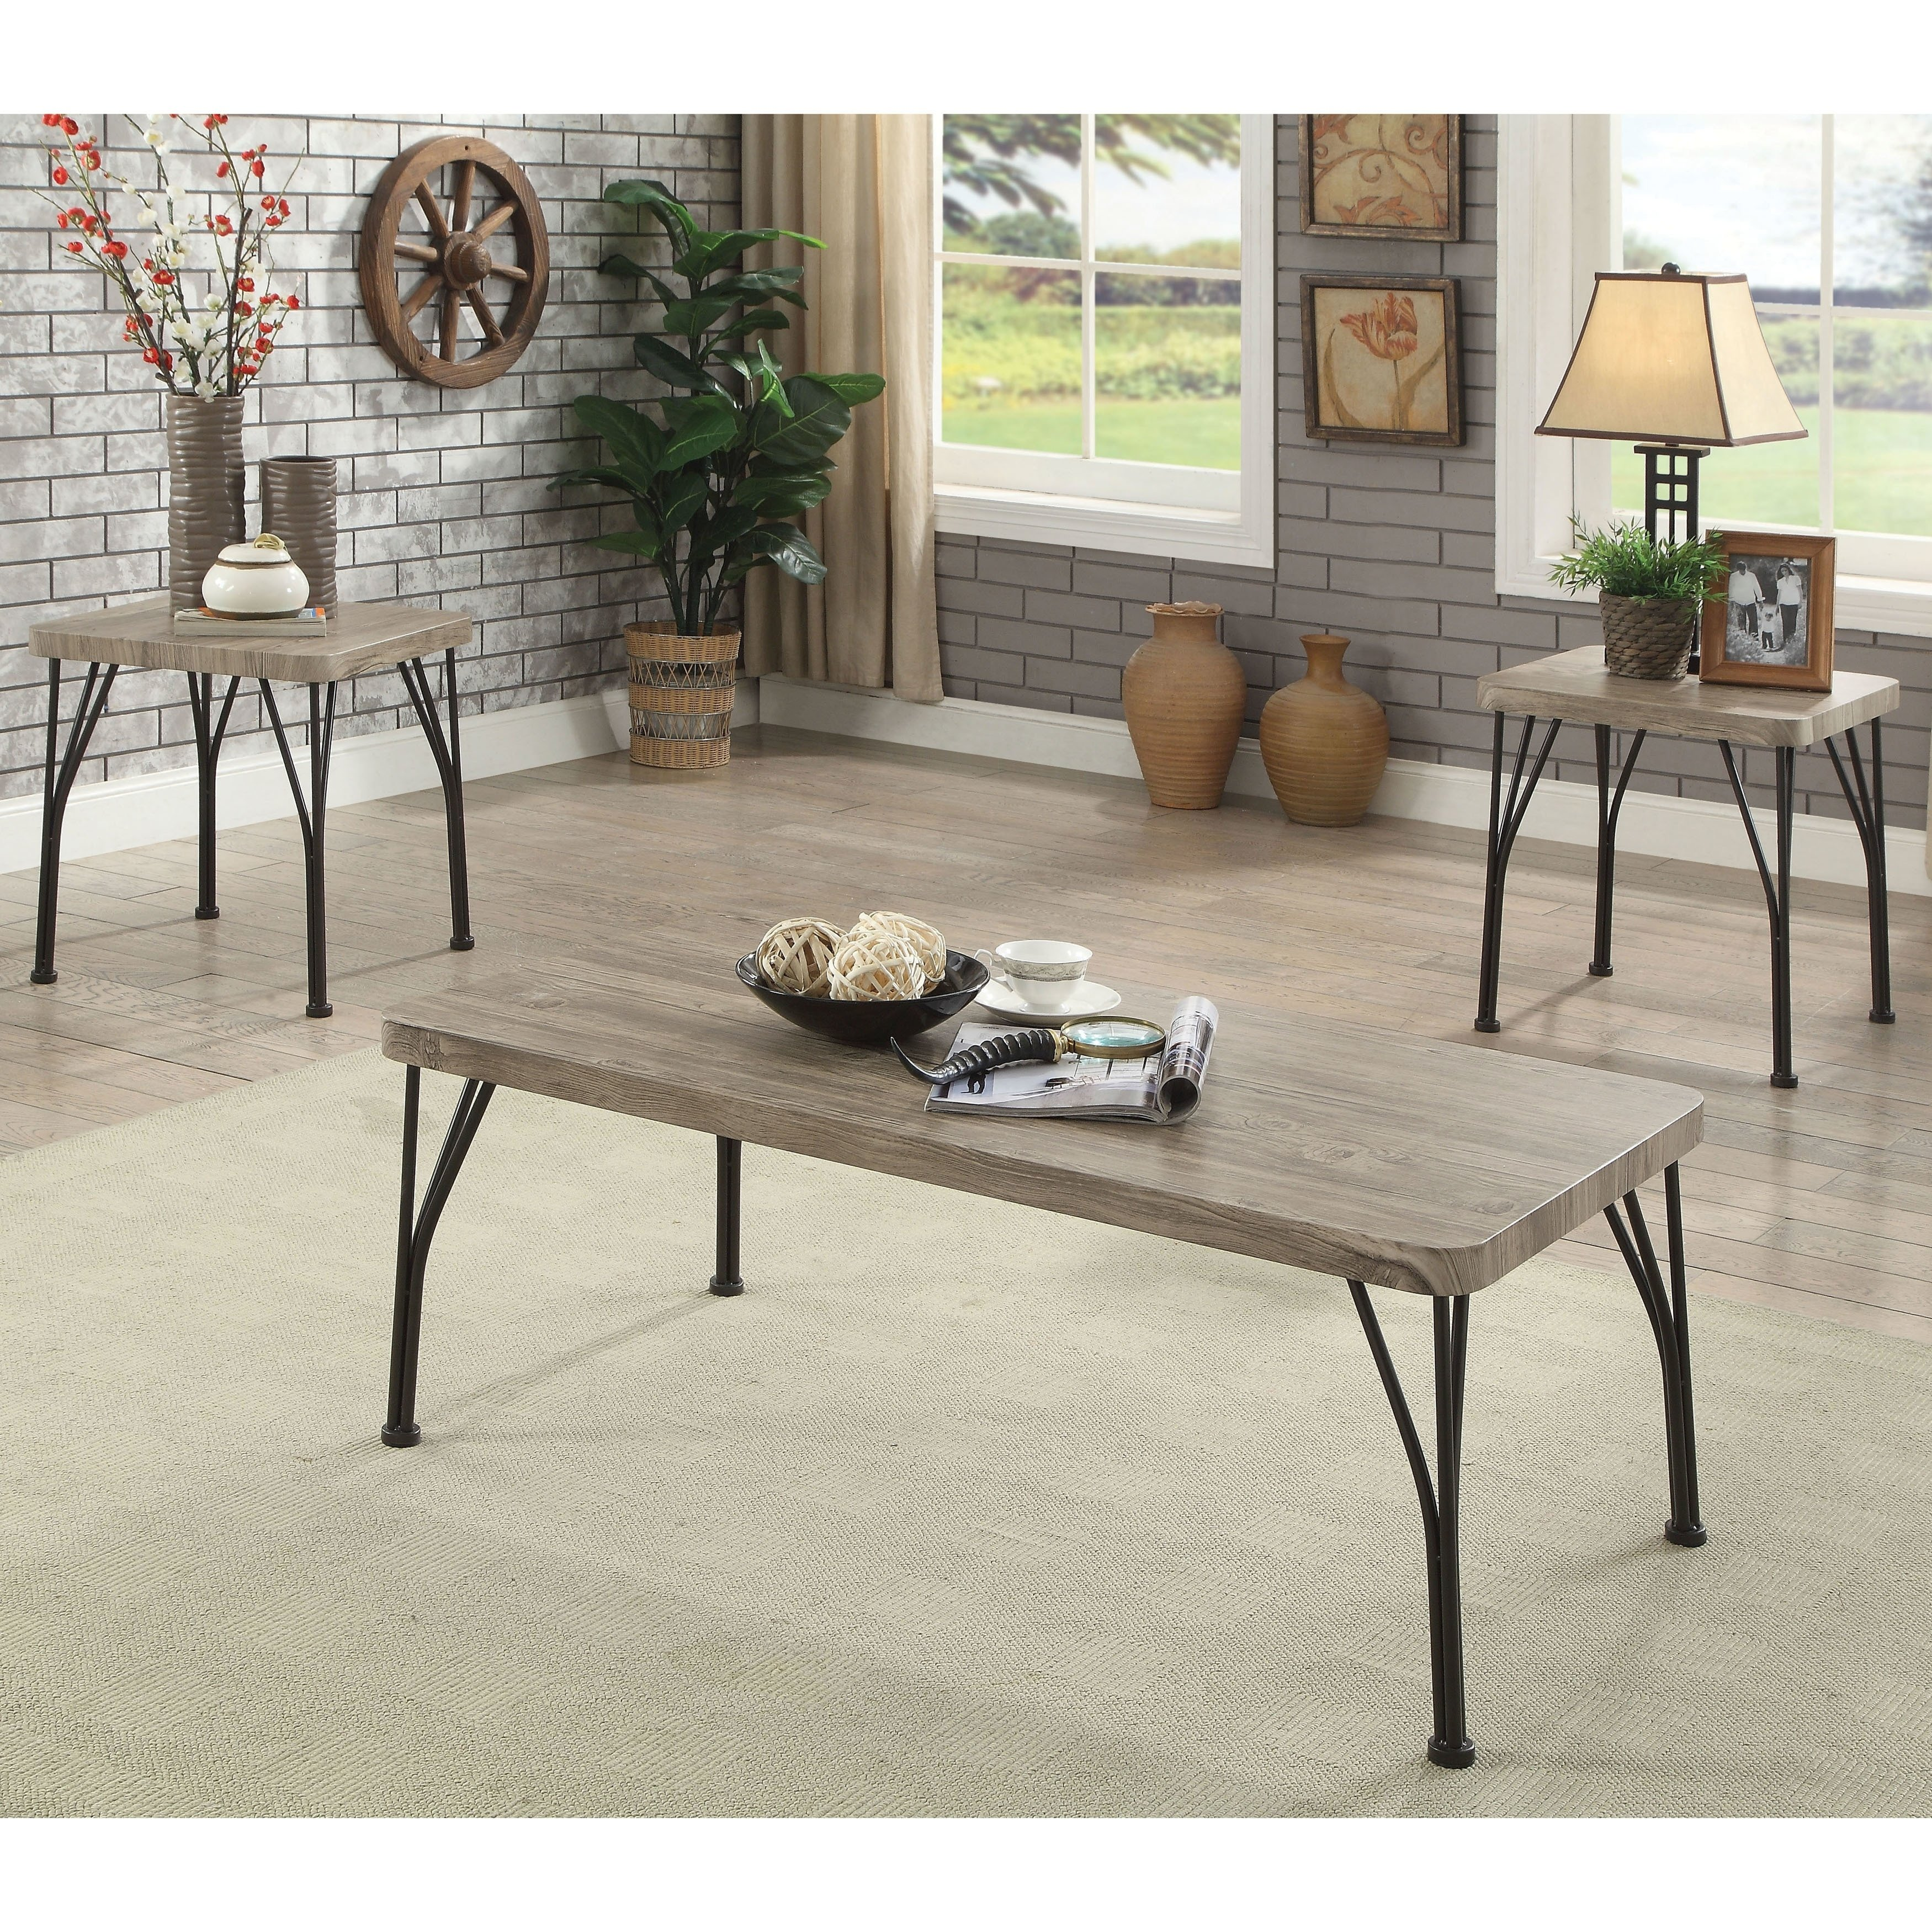 furniture america hathway industrial metal piece accent table set contemporary lamps hollywood glam corner entry jcpenney bag folding nesting tables pipe end large round wall